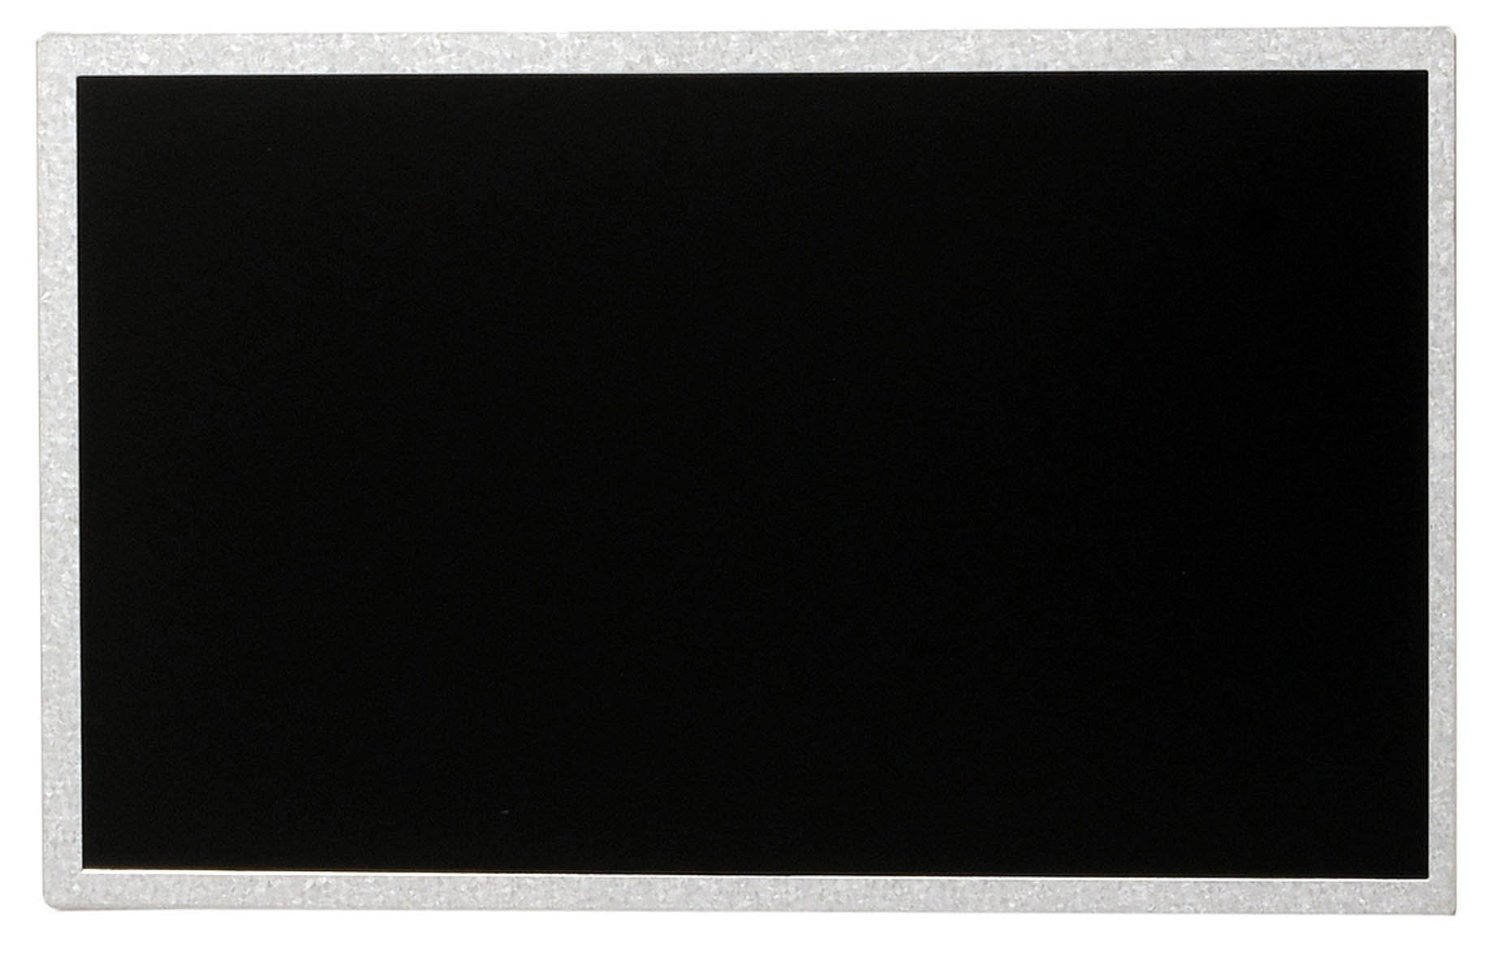 "10"" LED LCD SCREEN HSD100IFW1-A04 HSD100IFW4 FOR ASUS Eee PC 1001PX(China (Mainland))"